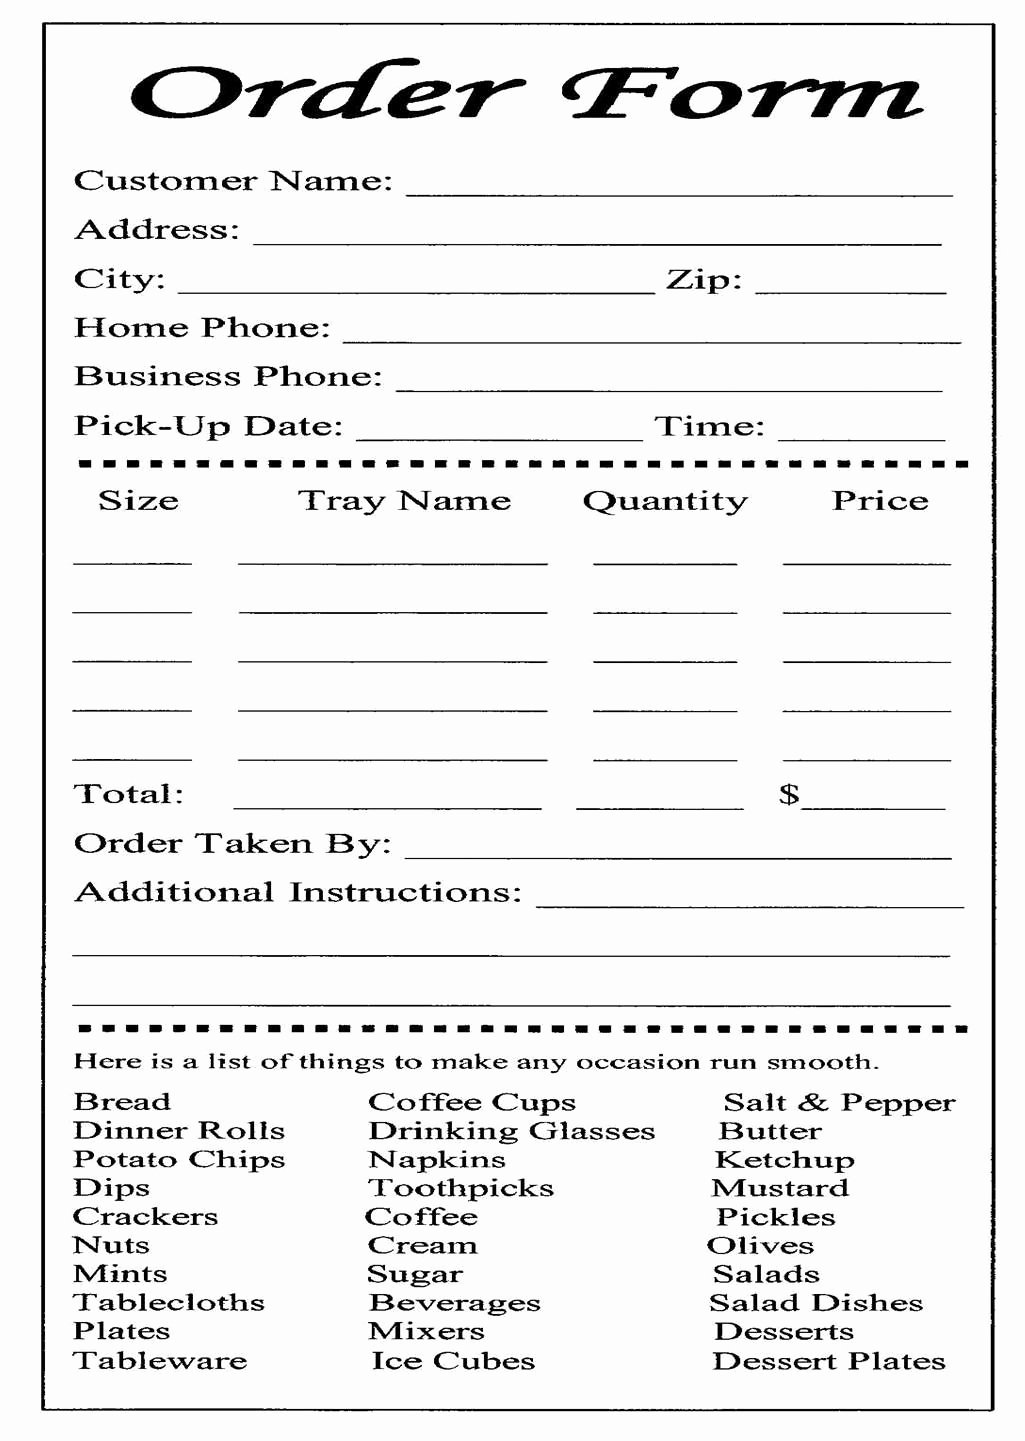 Catering order form Template Inspirational Cake Ball order form Templates Free